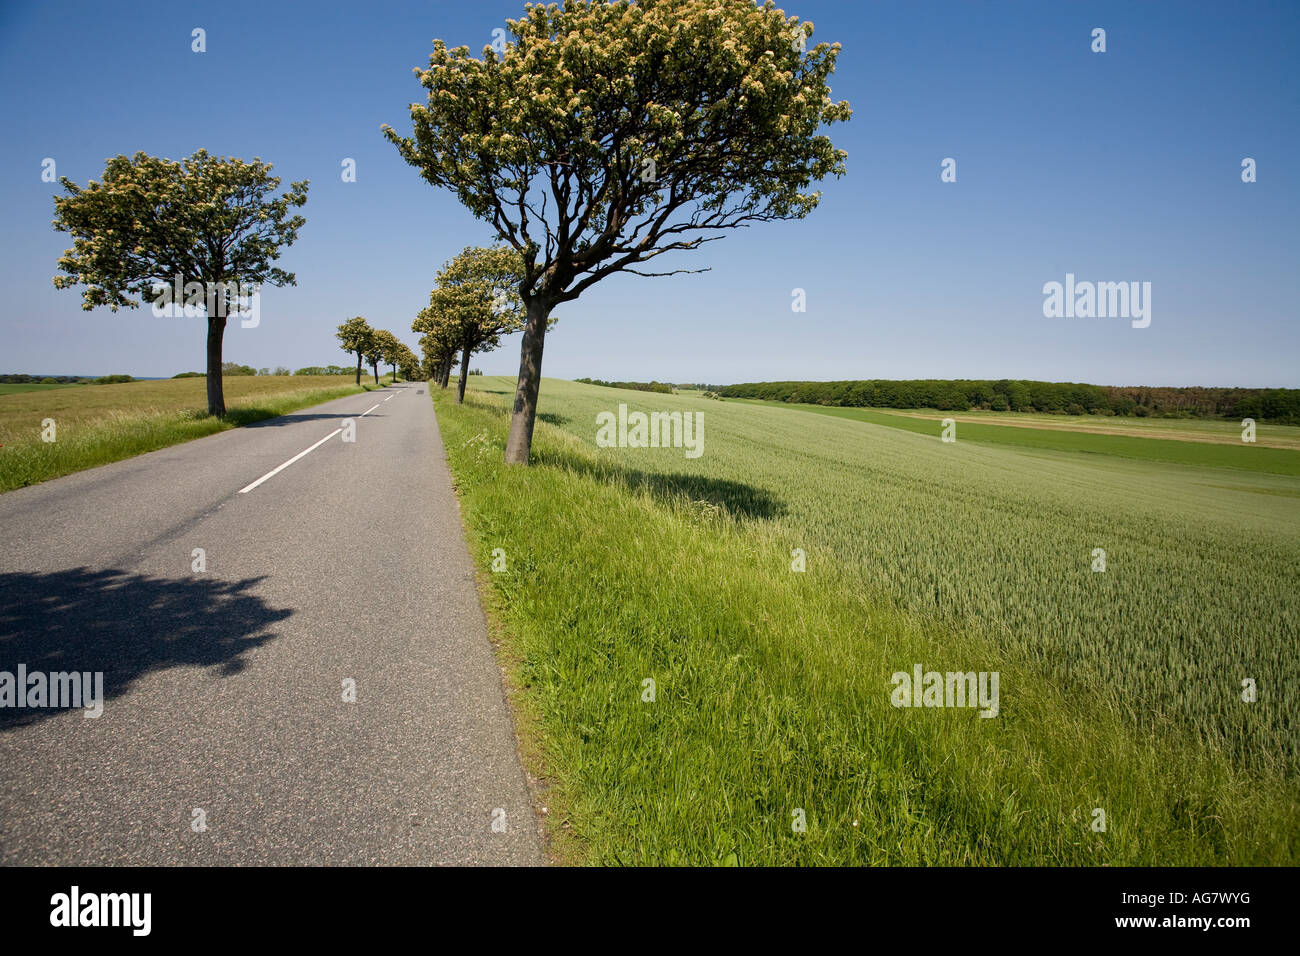 Tree Lined Road with Green Field A straight road with a white ... for Straight Road With Trees  51ane